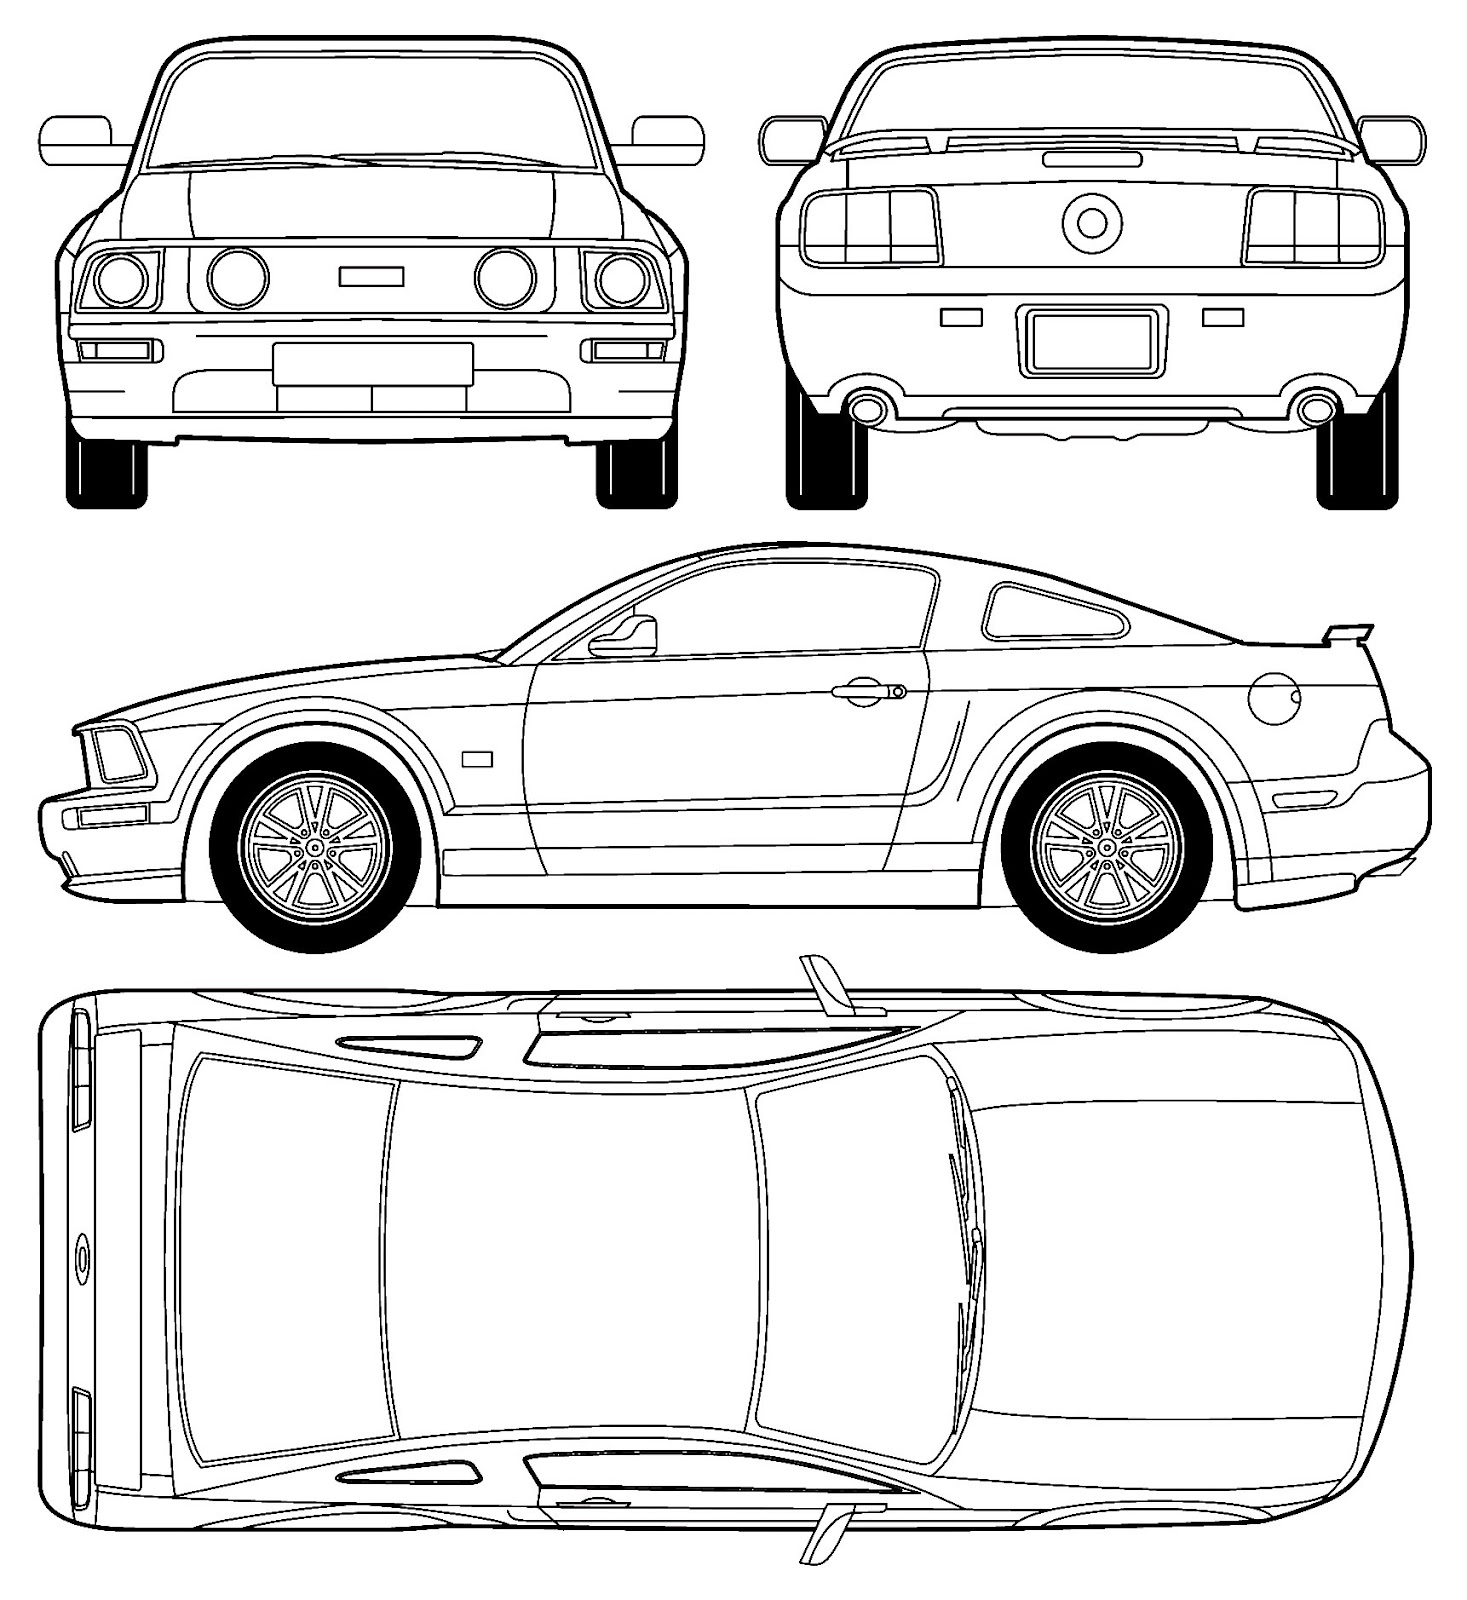 Ford Mustang GT blueprint